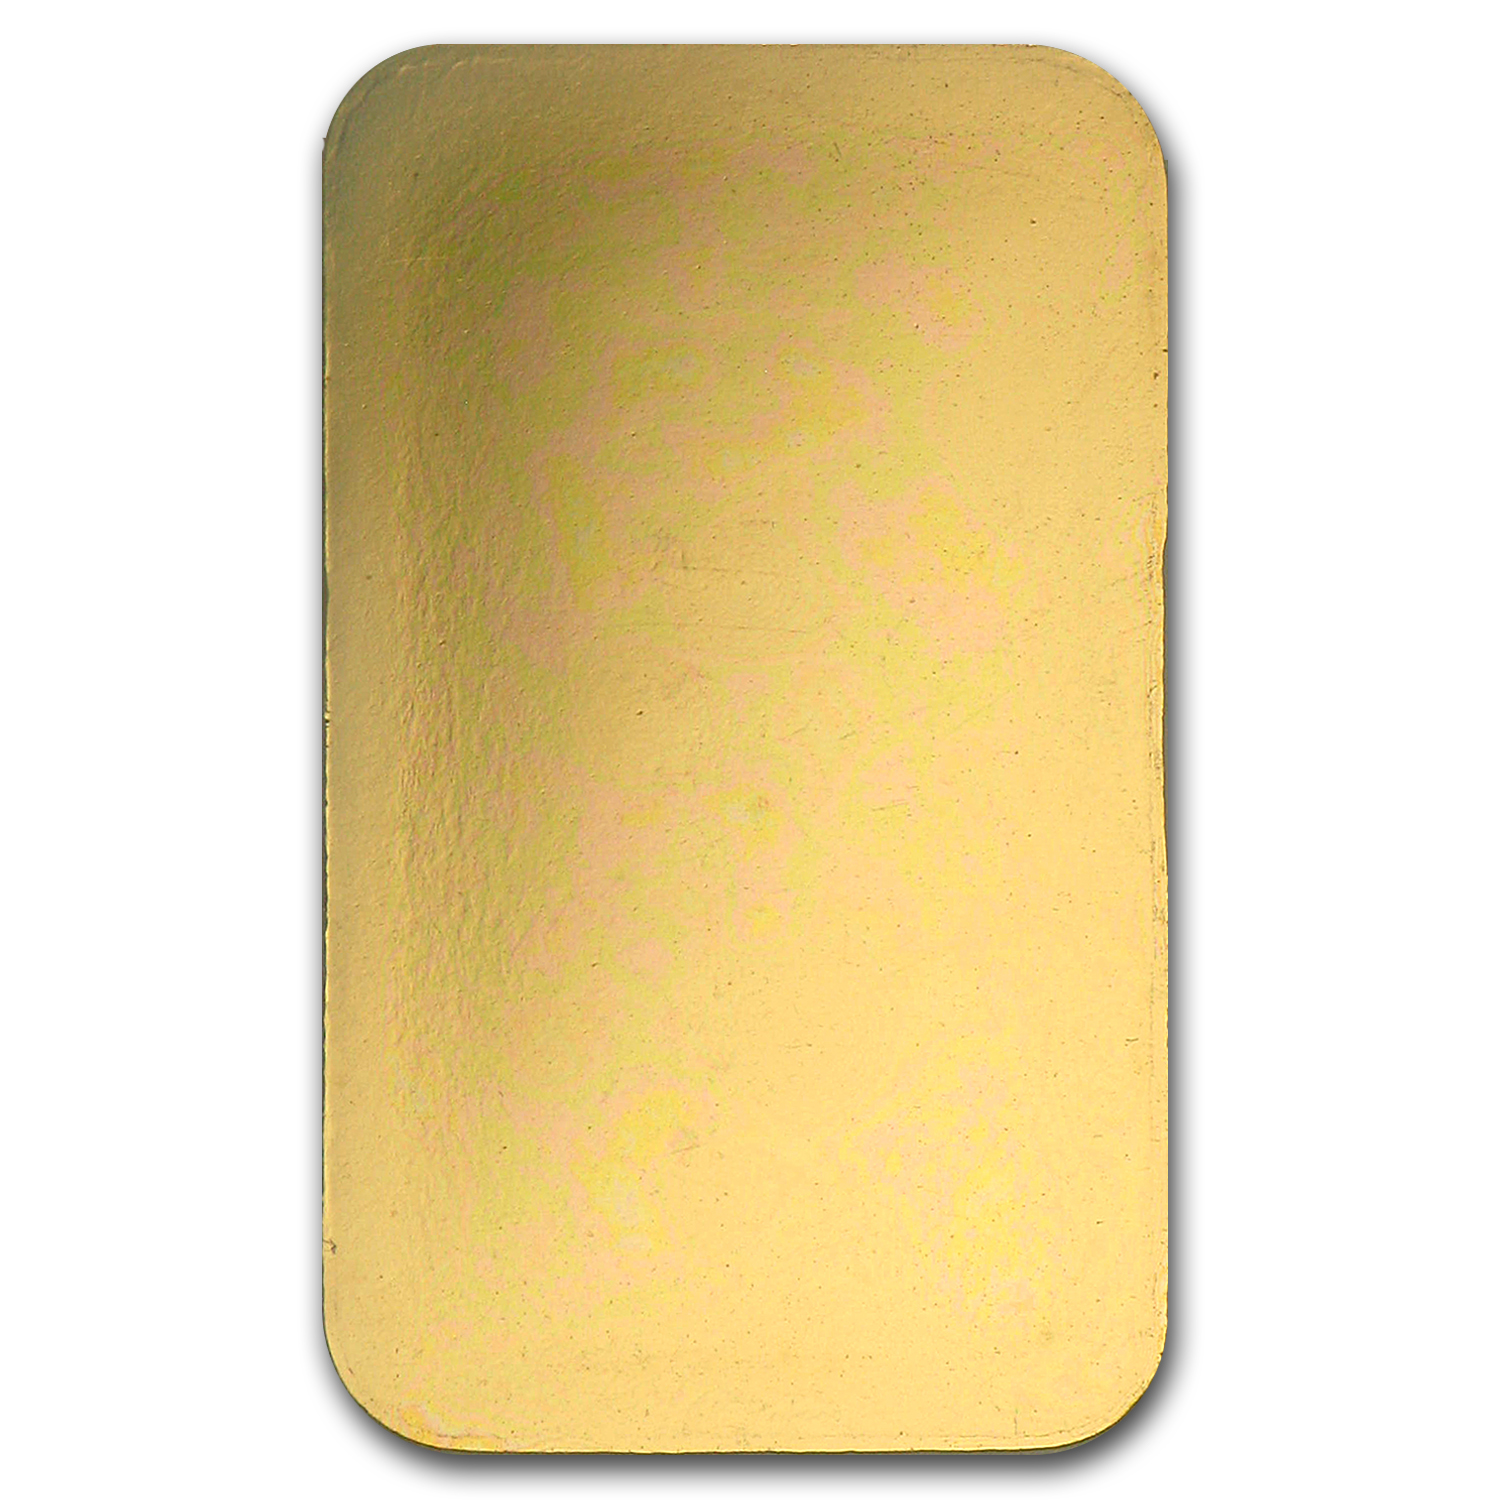 1/4 oz Gold Bar - Argor-Heraeus